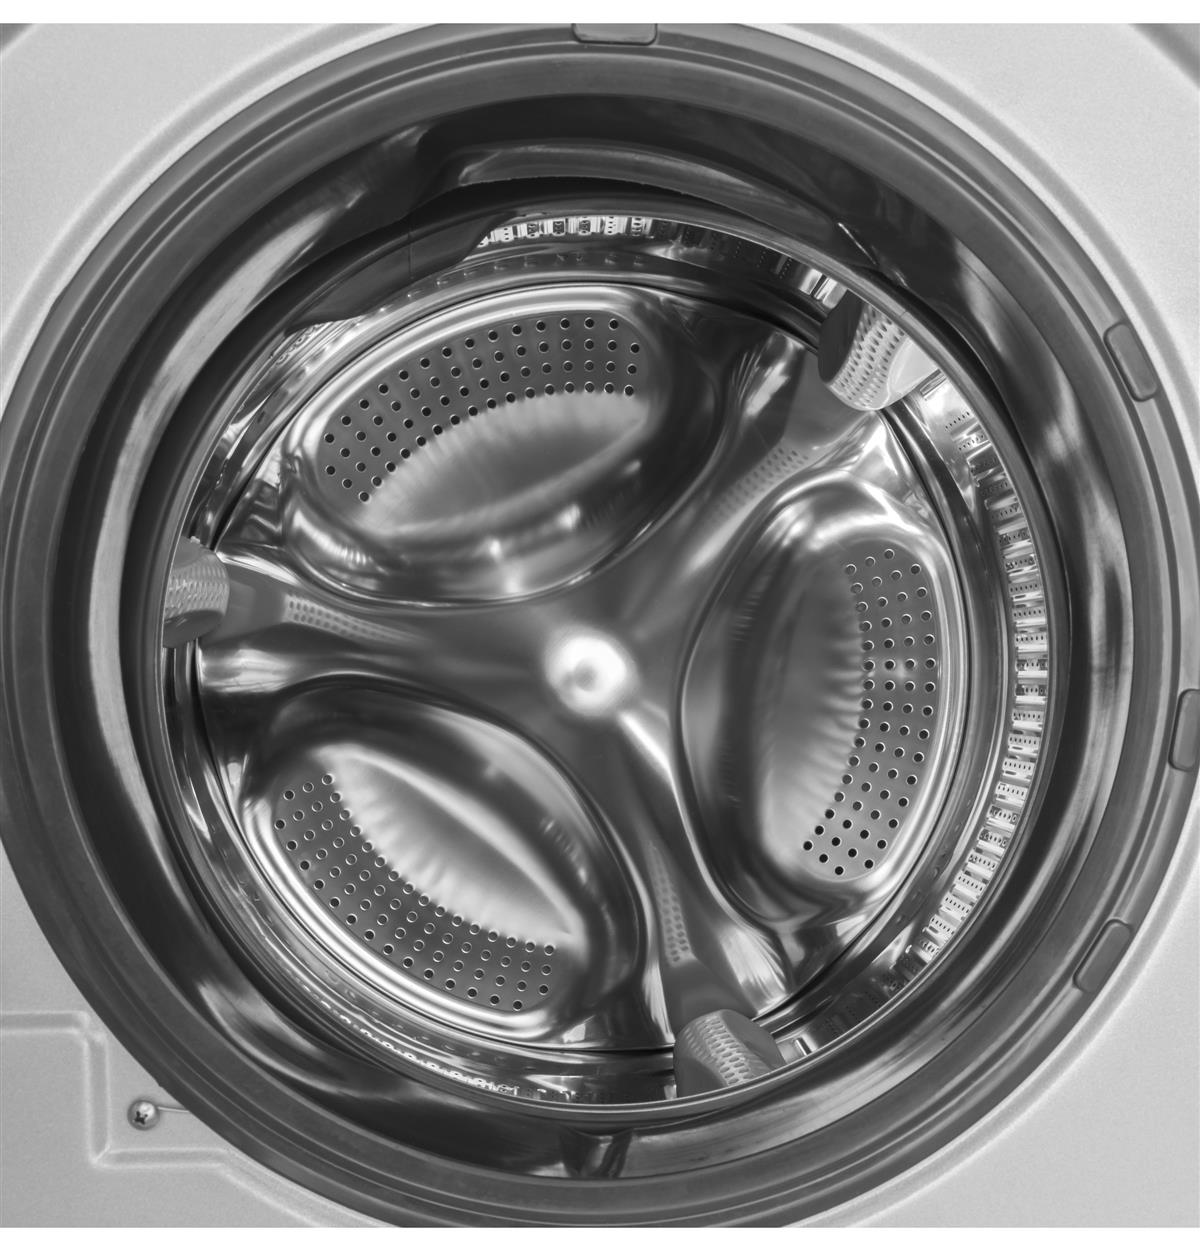 Silver Unitized Spacemaker Washer & Dryers HLC1700AXS Feature Photos